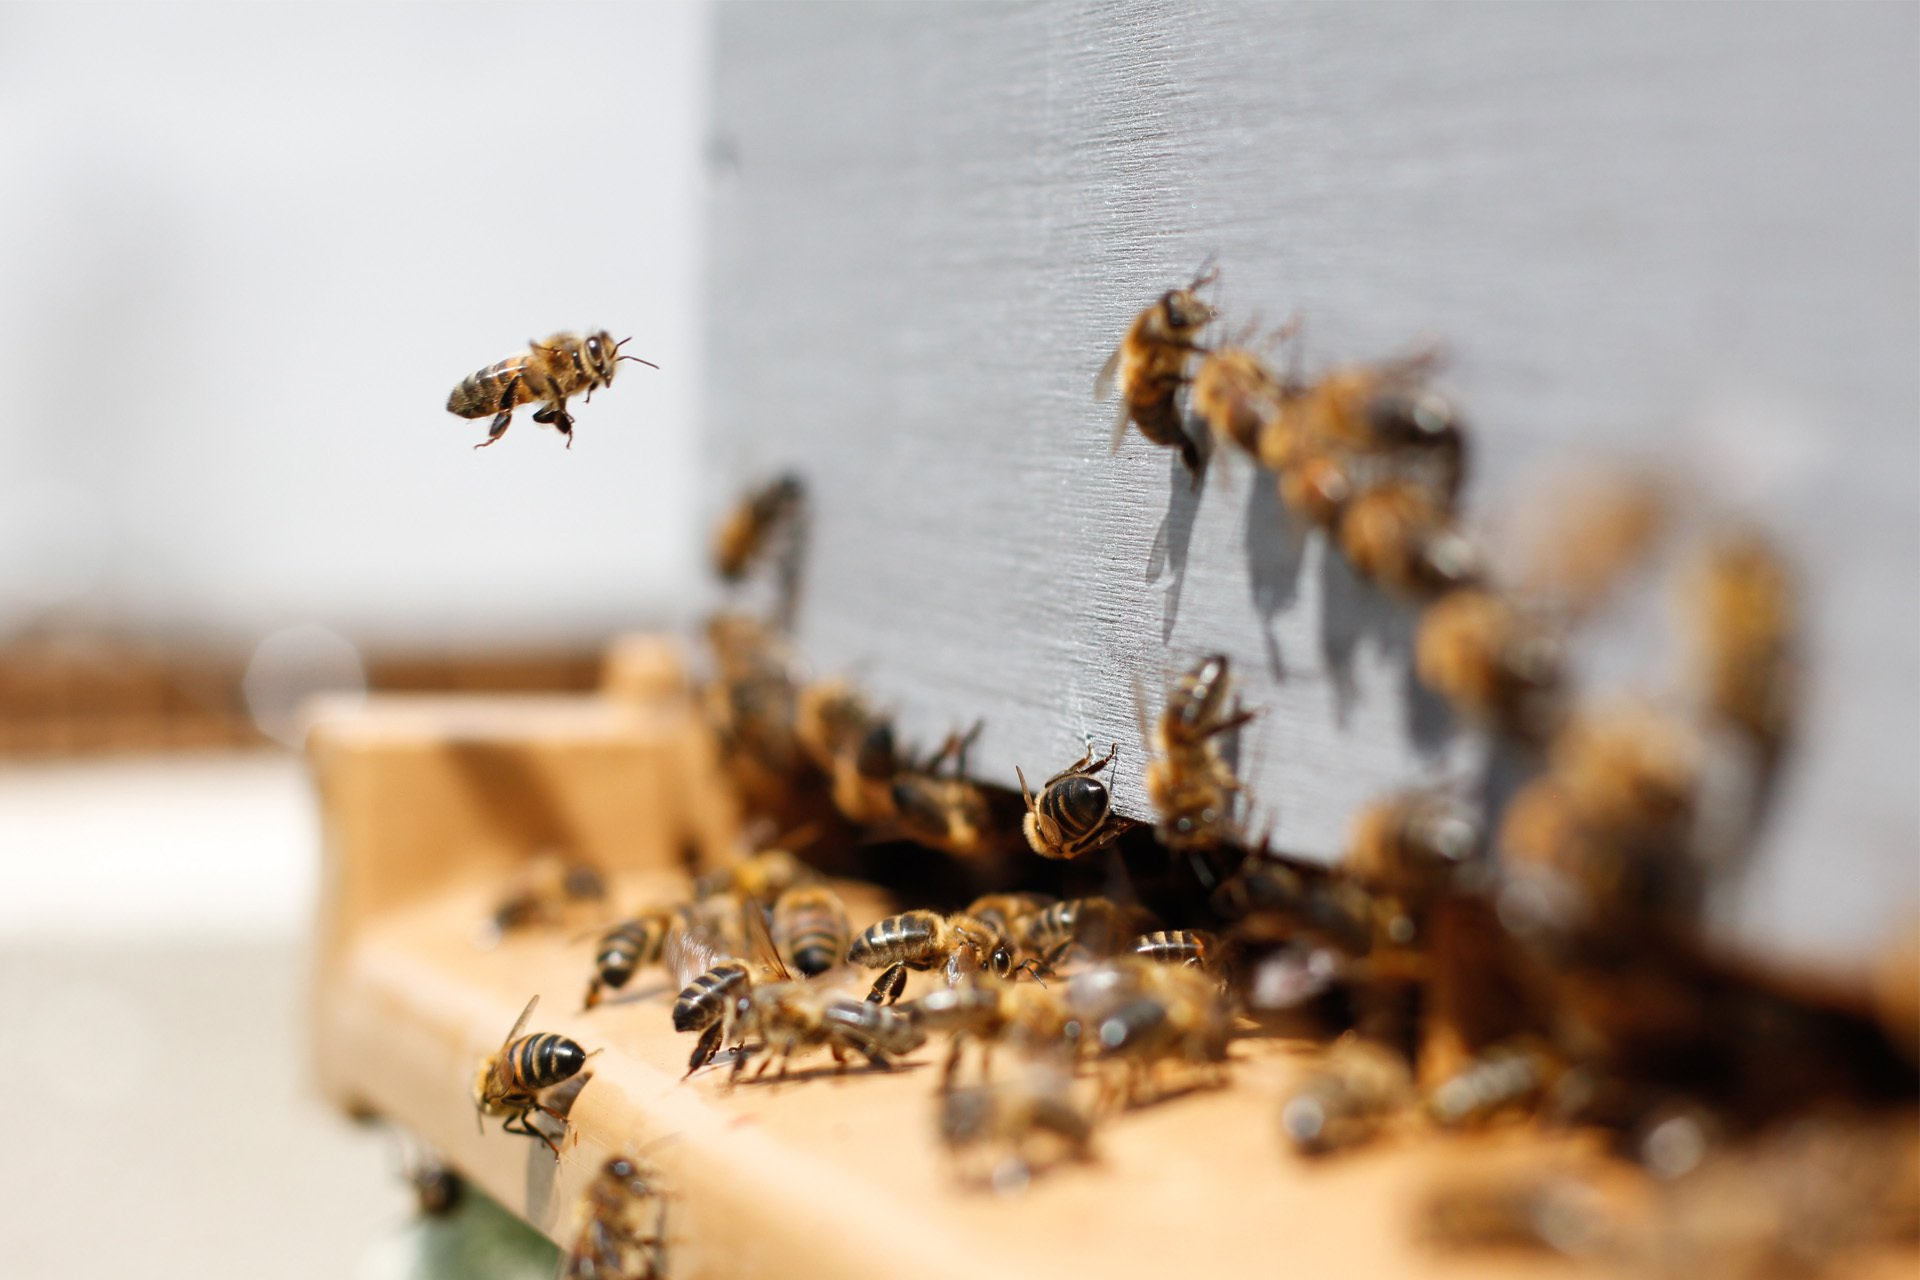 Close up of bees entering a hive